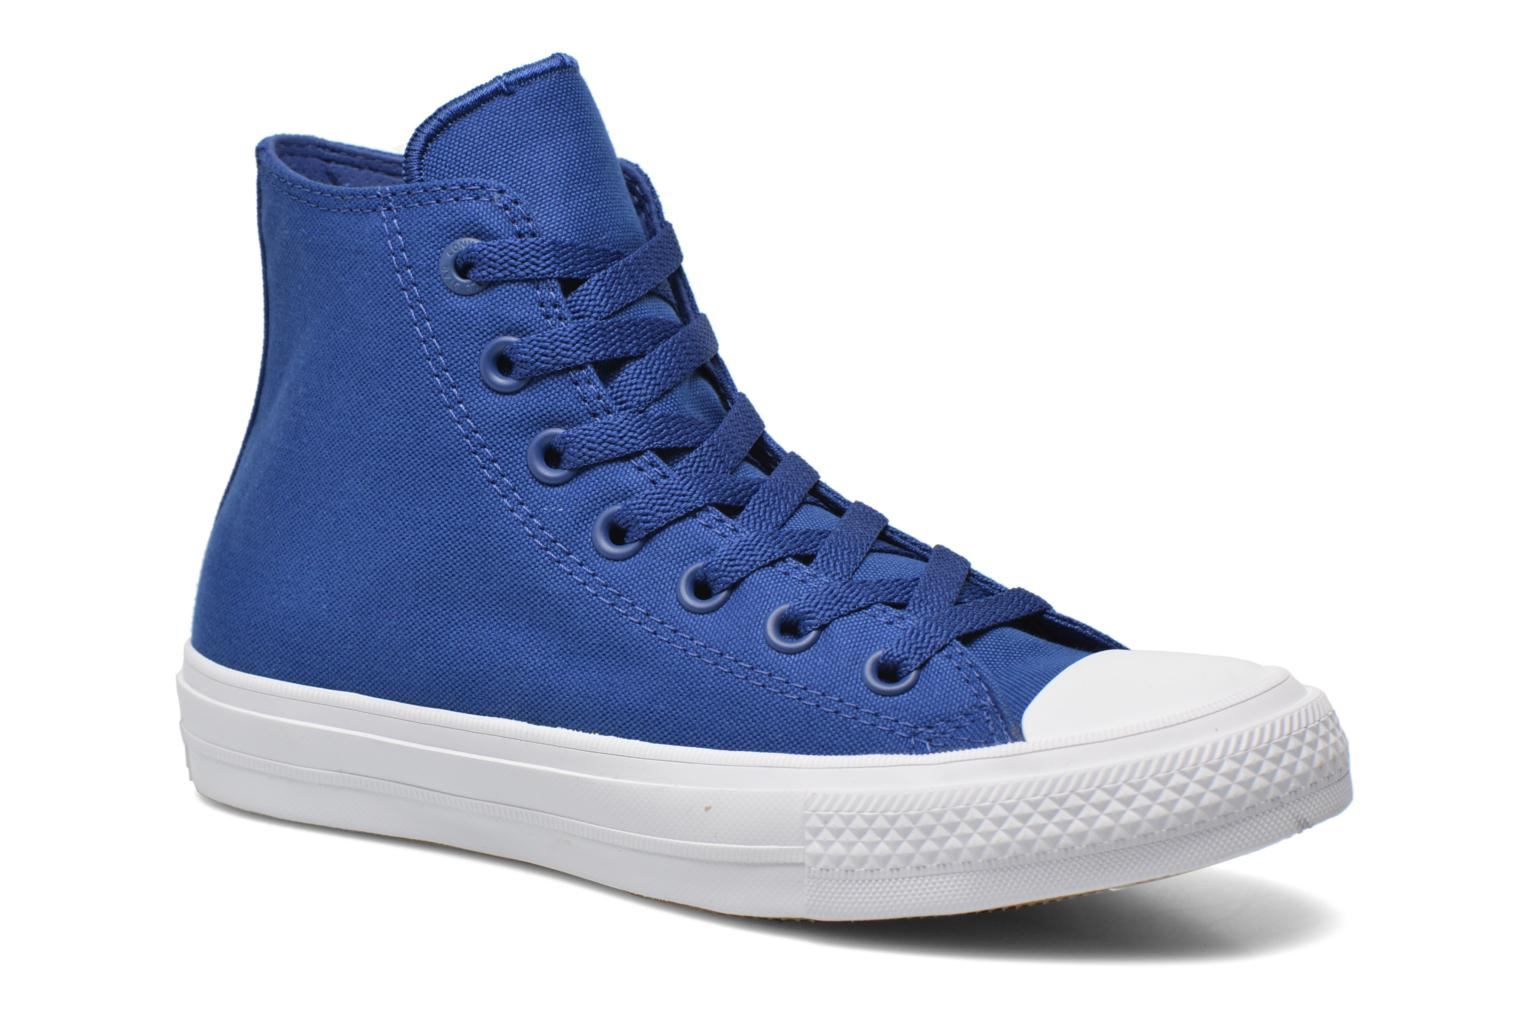 converse all stars chucks hi blau preisvergleich die. Black Bedroom Furniture Sets. Home Design Ideas